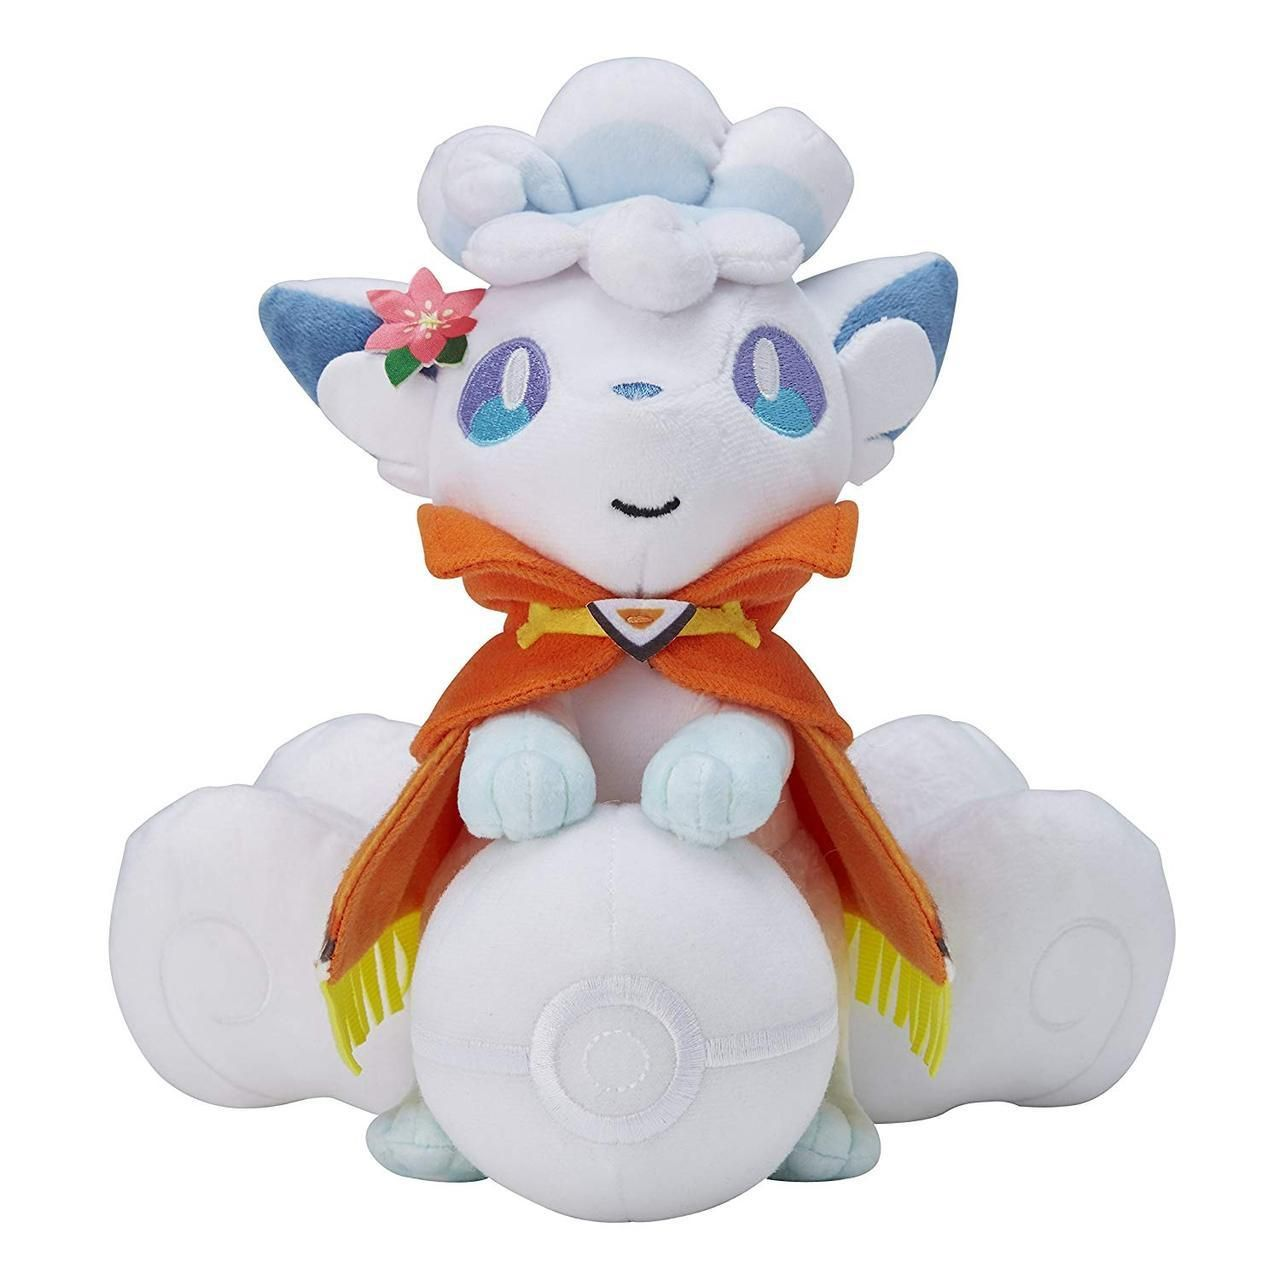 Sapporo Snow Festival Plushes from the Pokemon Center -